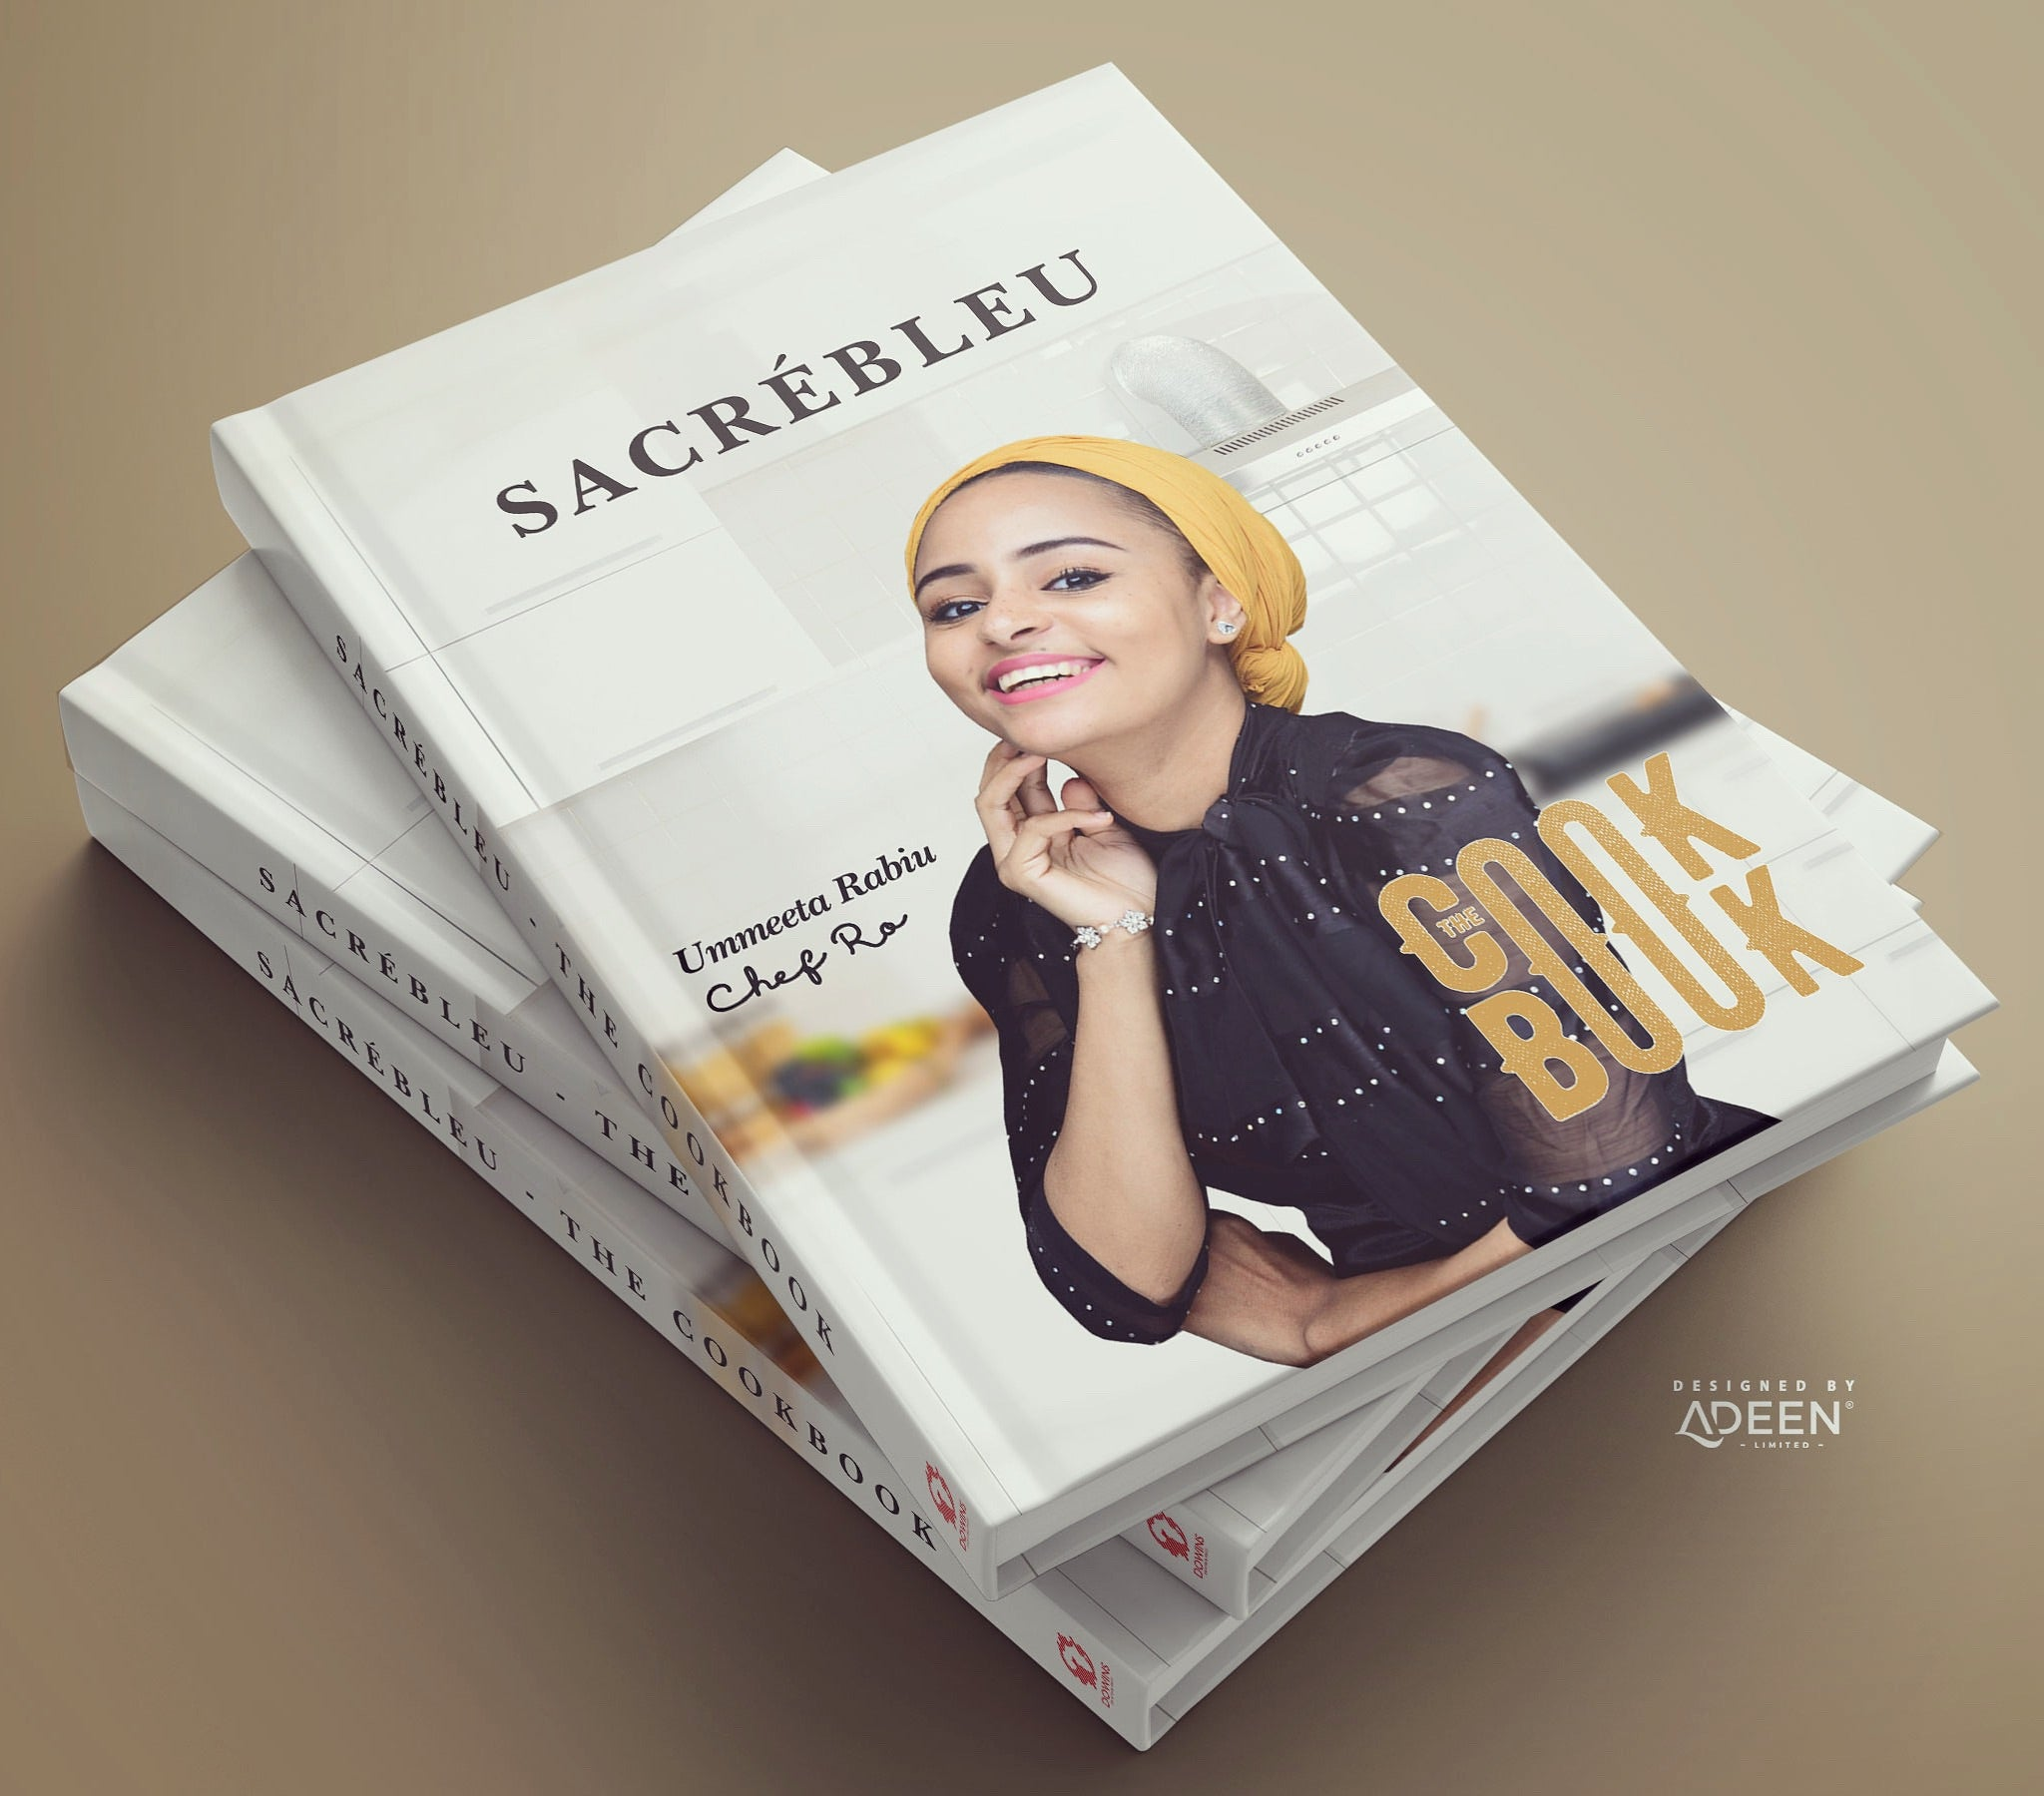 Sacrebleu - The Cookbook